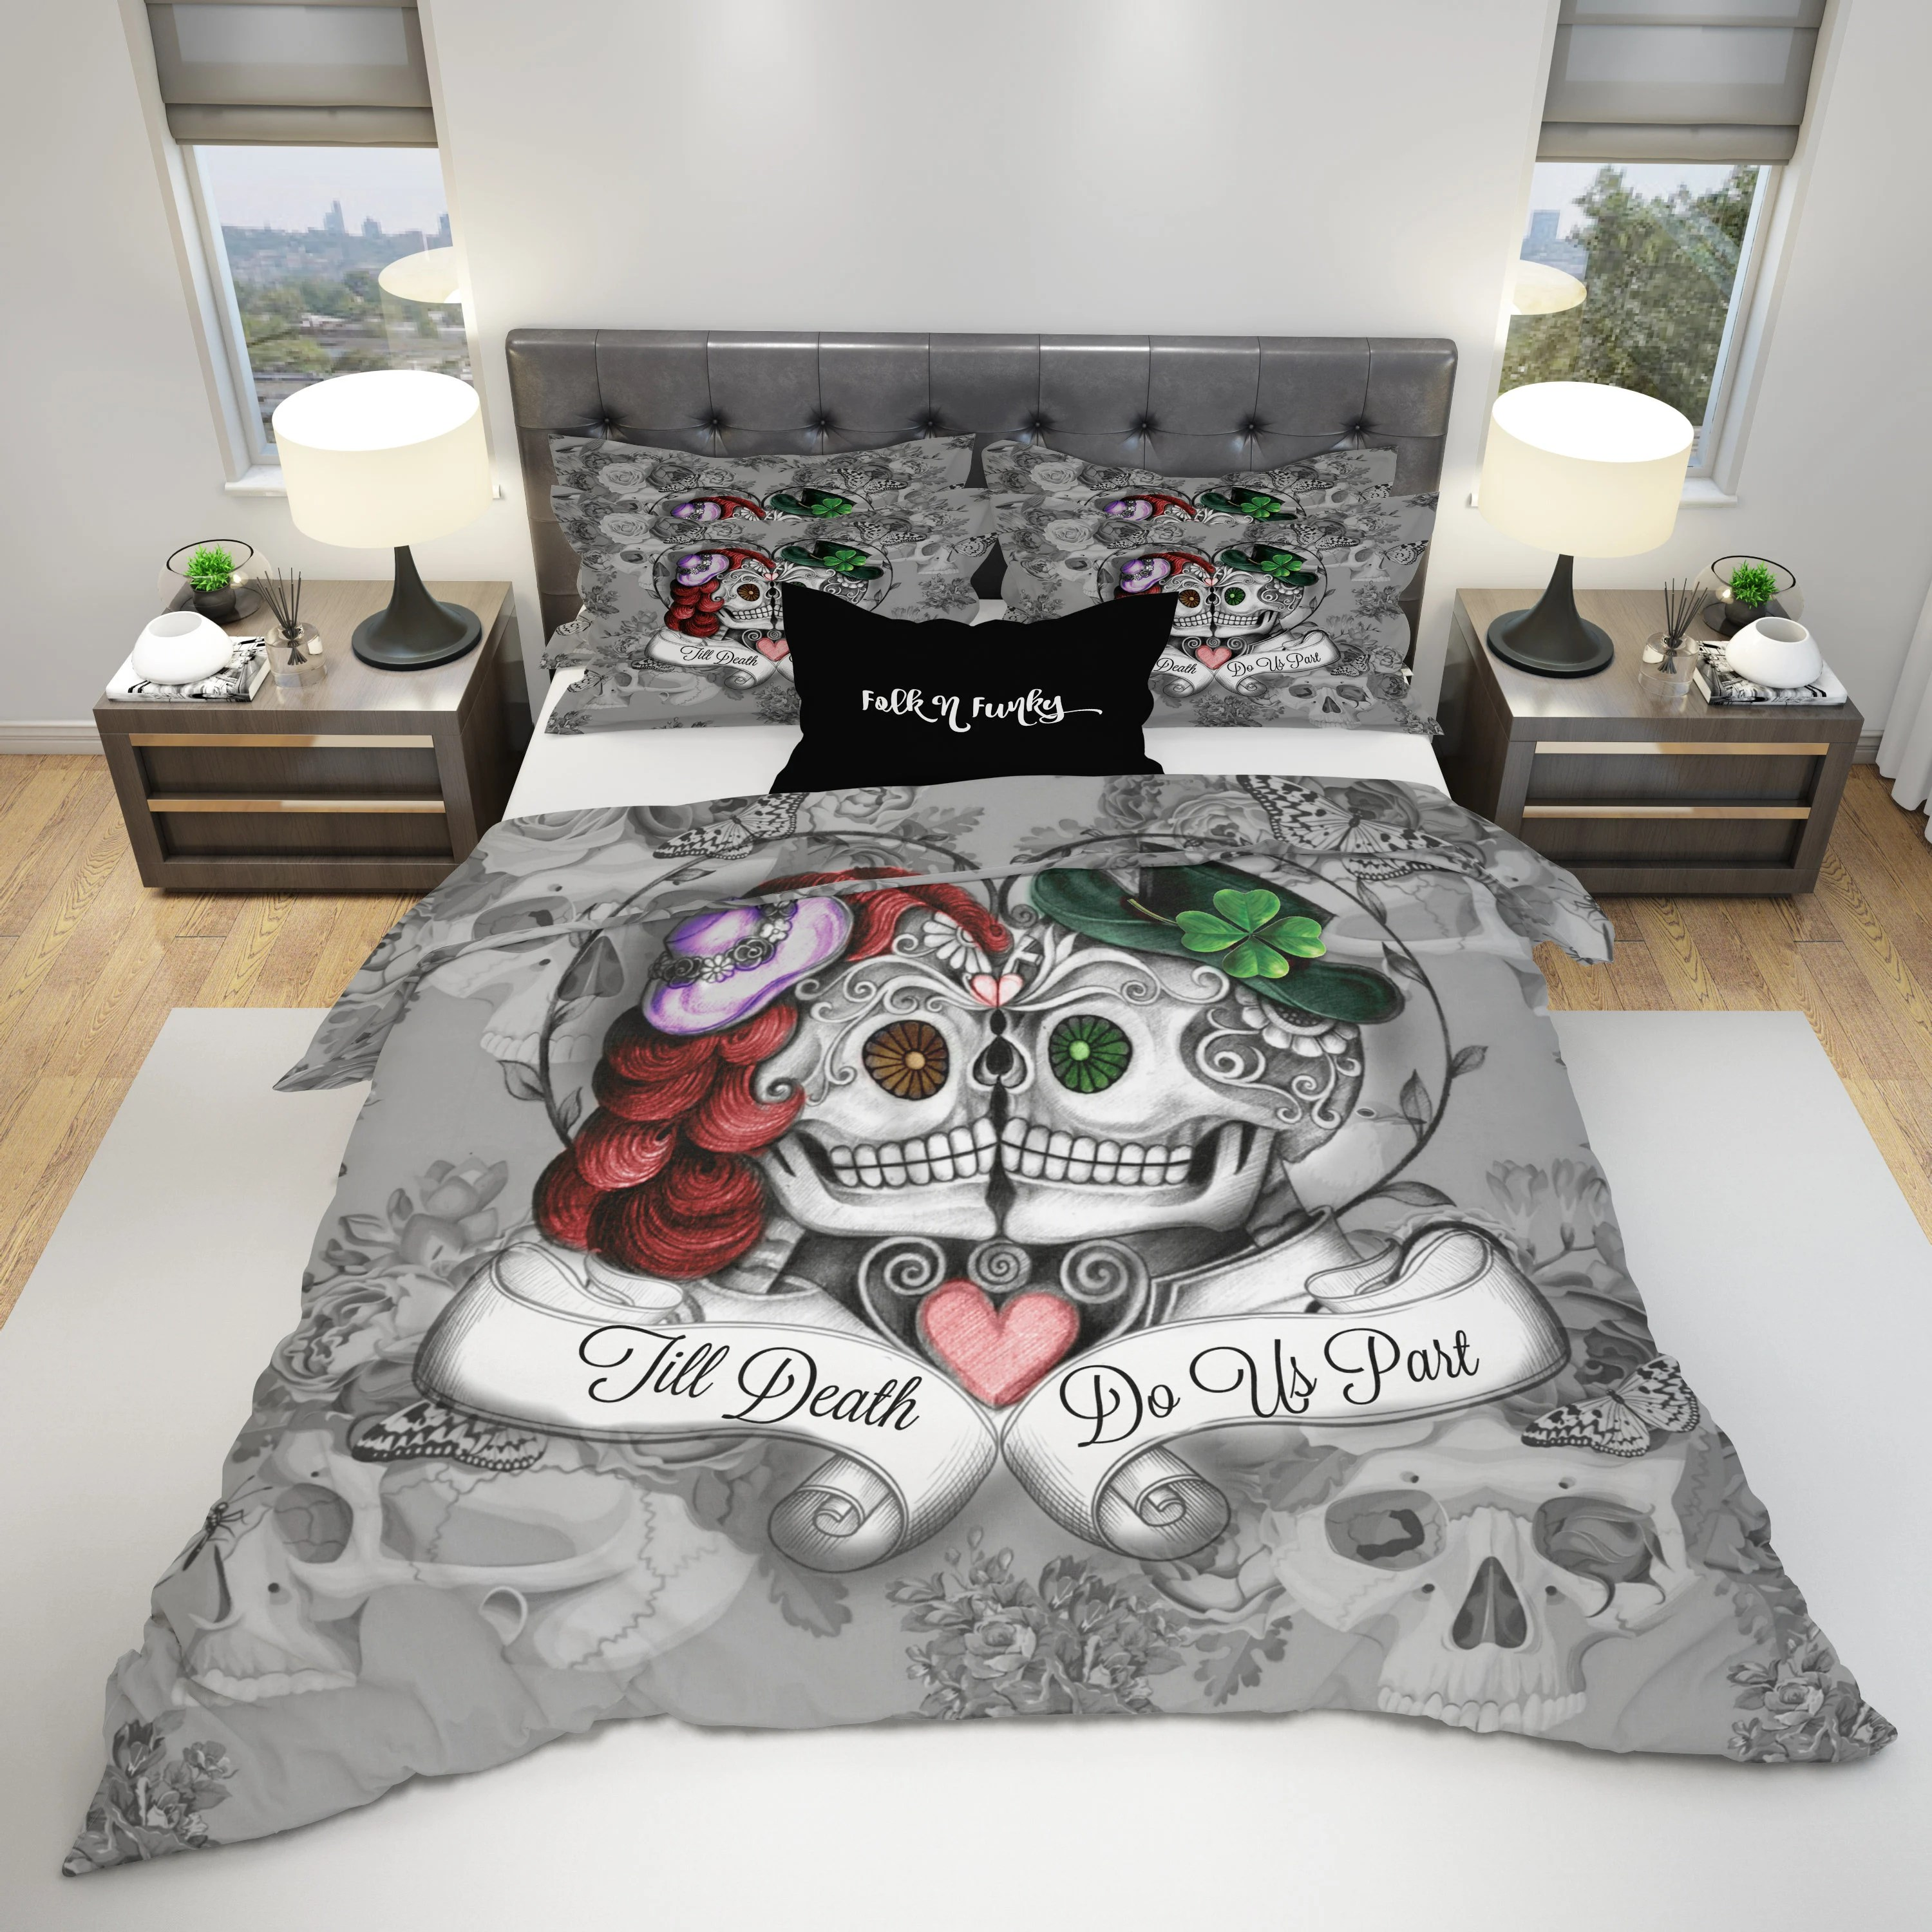 Duvet And Comforter Sets Bedding Sugar Skull Comforter Set Or Duvet Cover